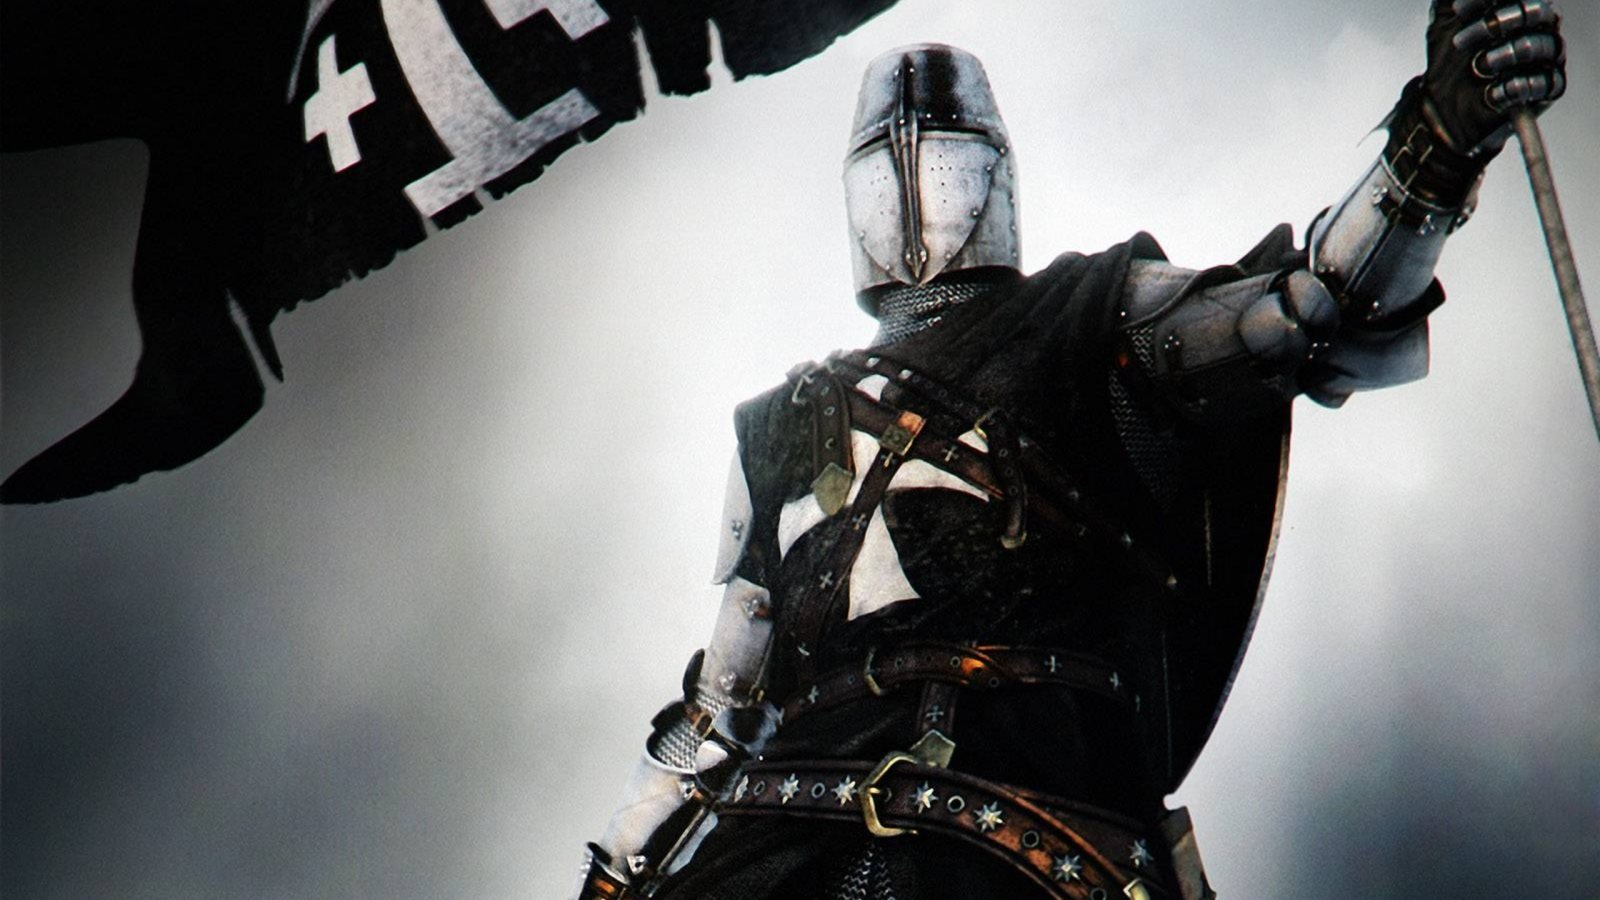 wallpaper crusader 1600x900 Wallpapers HD Widescreen Desktop Photo 1600x900